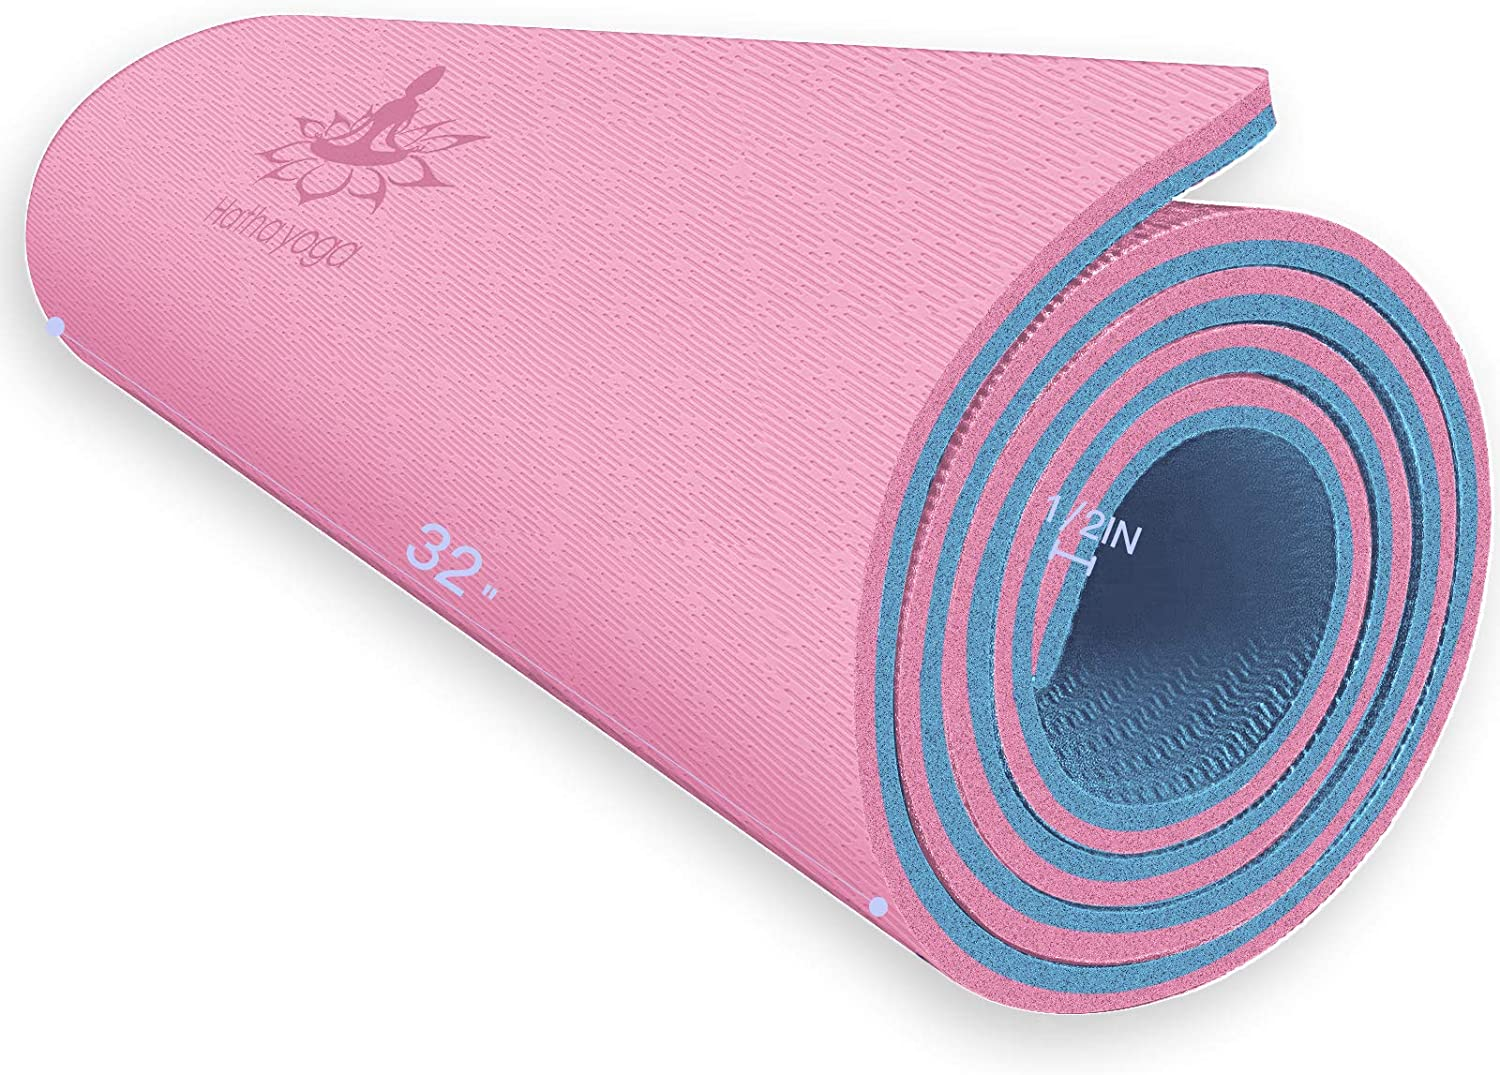 Hatha Yoga Free shipping / New Extra Thick TPE Mat Free shipping on posting reviews - 2 1 72